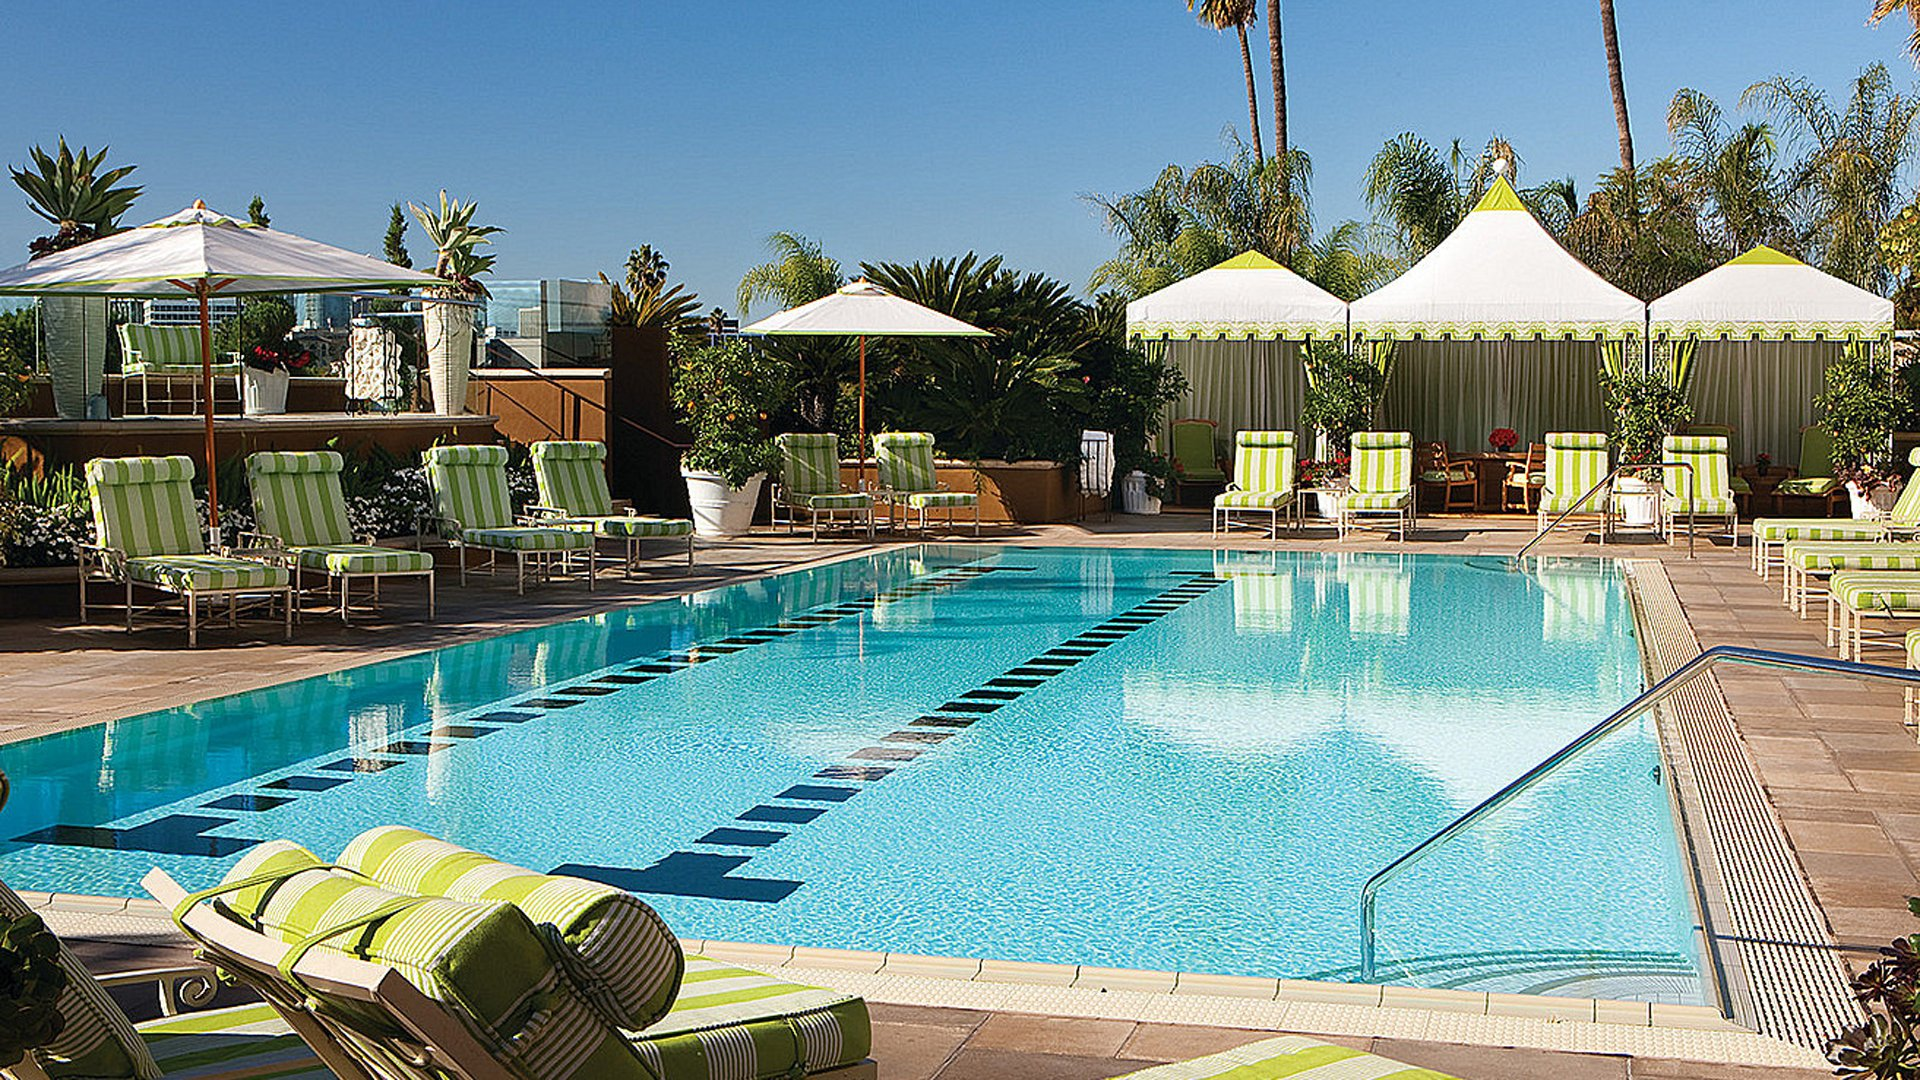 Book four seasons los angeles at beverly hills carrier - Uk hotels with outdoor swimming pools ...